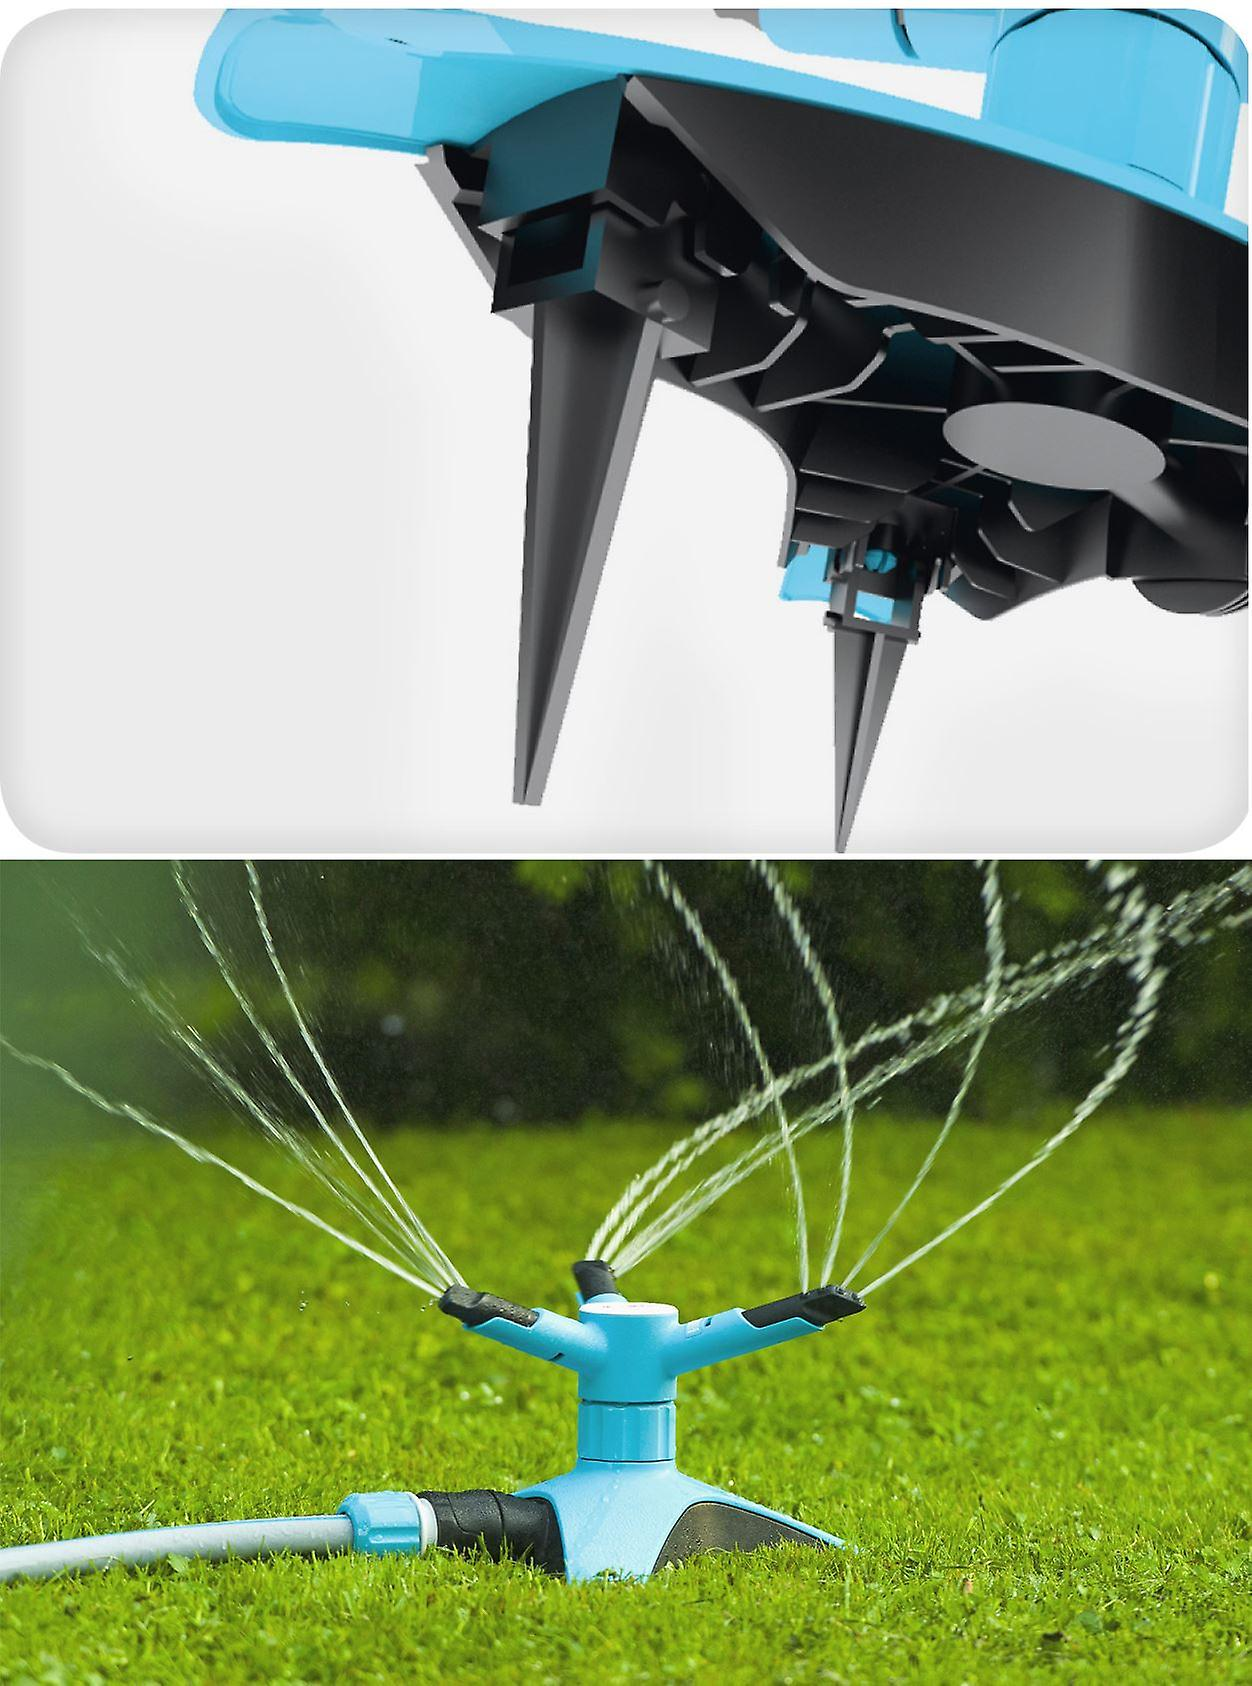 Rotating Sprinkler for Grass Lawn Outdoor Garden Watering Irrigation System